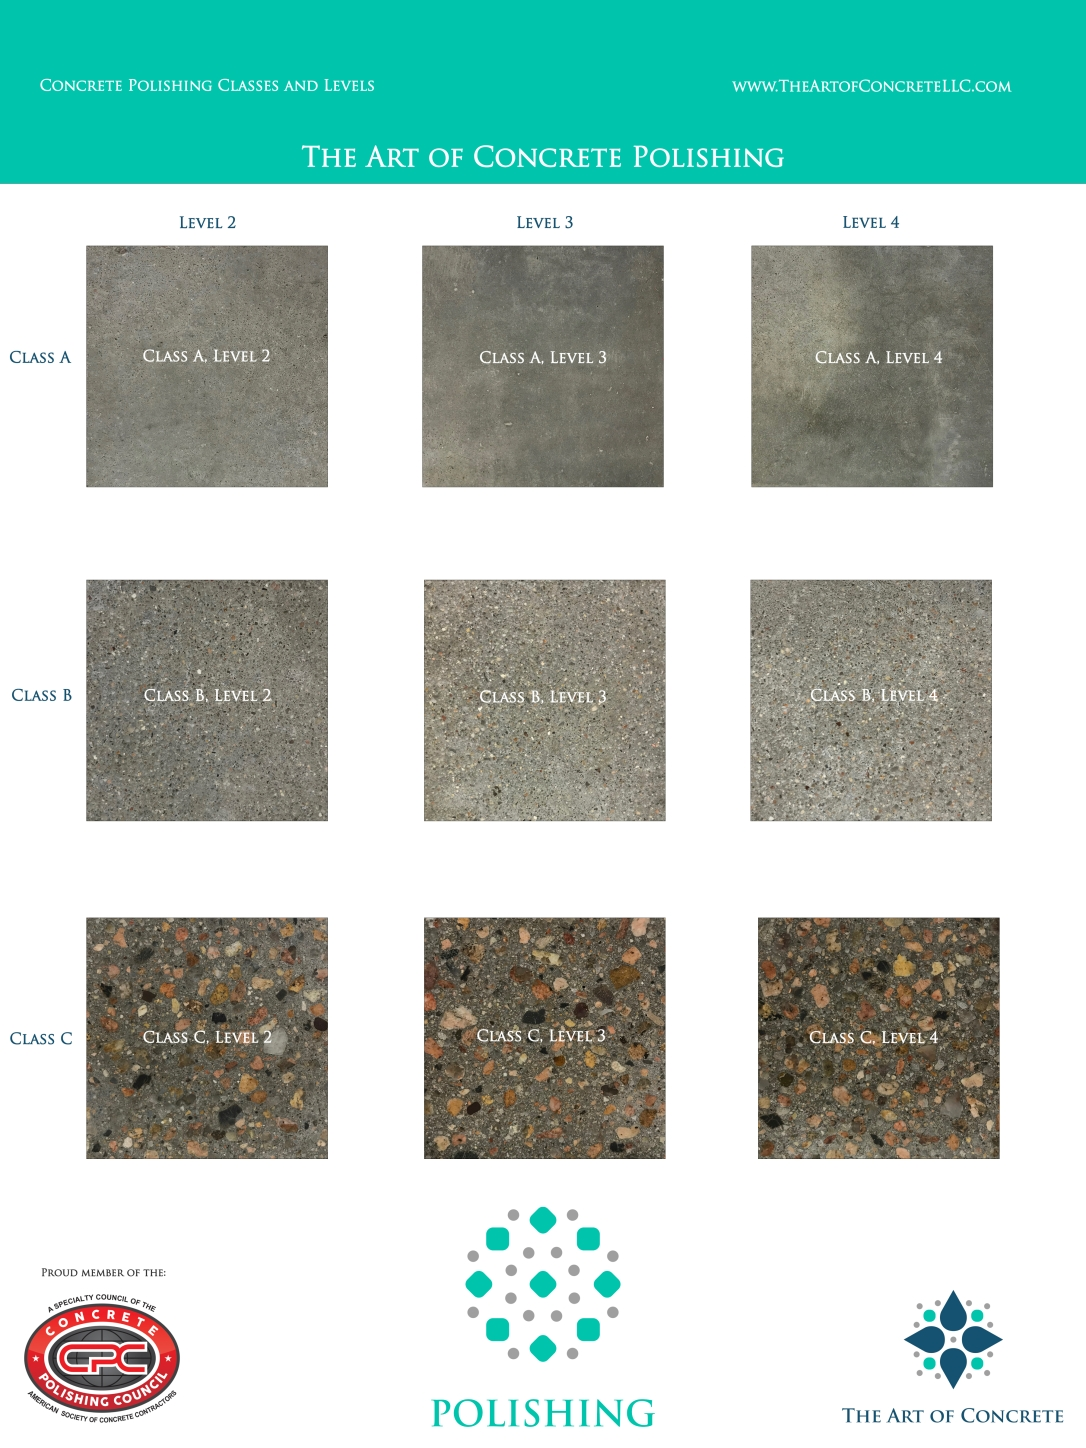 Concrete polishing classes and levels as defined by the Concrete Polishing Council